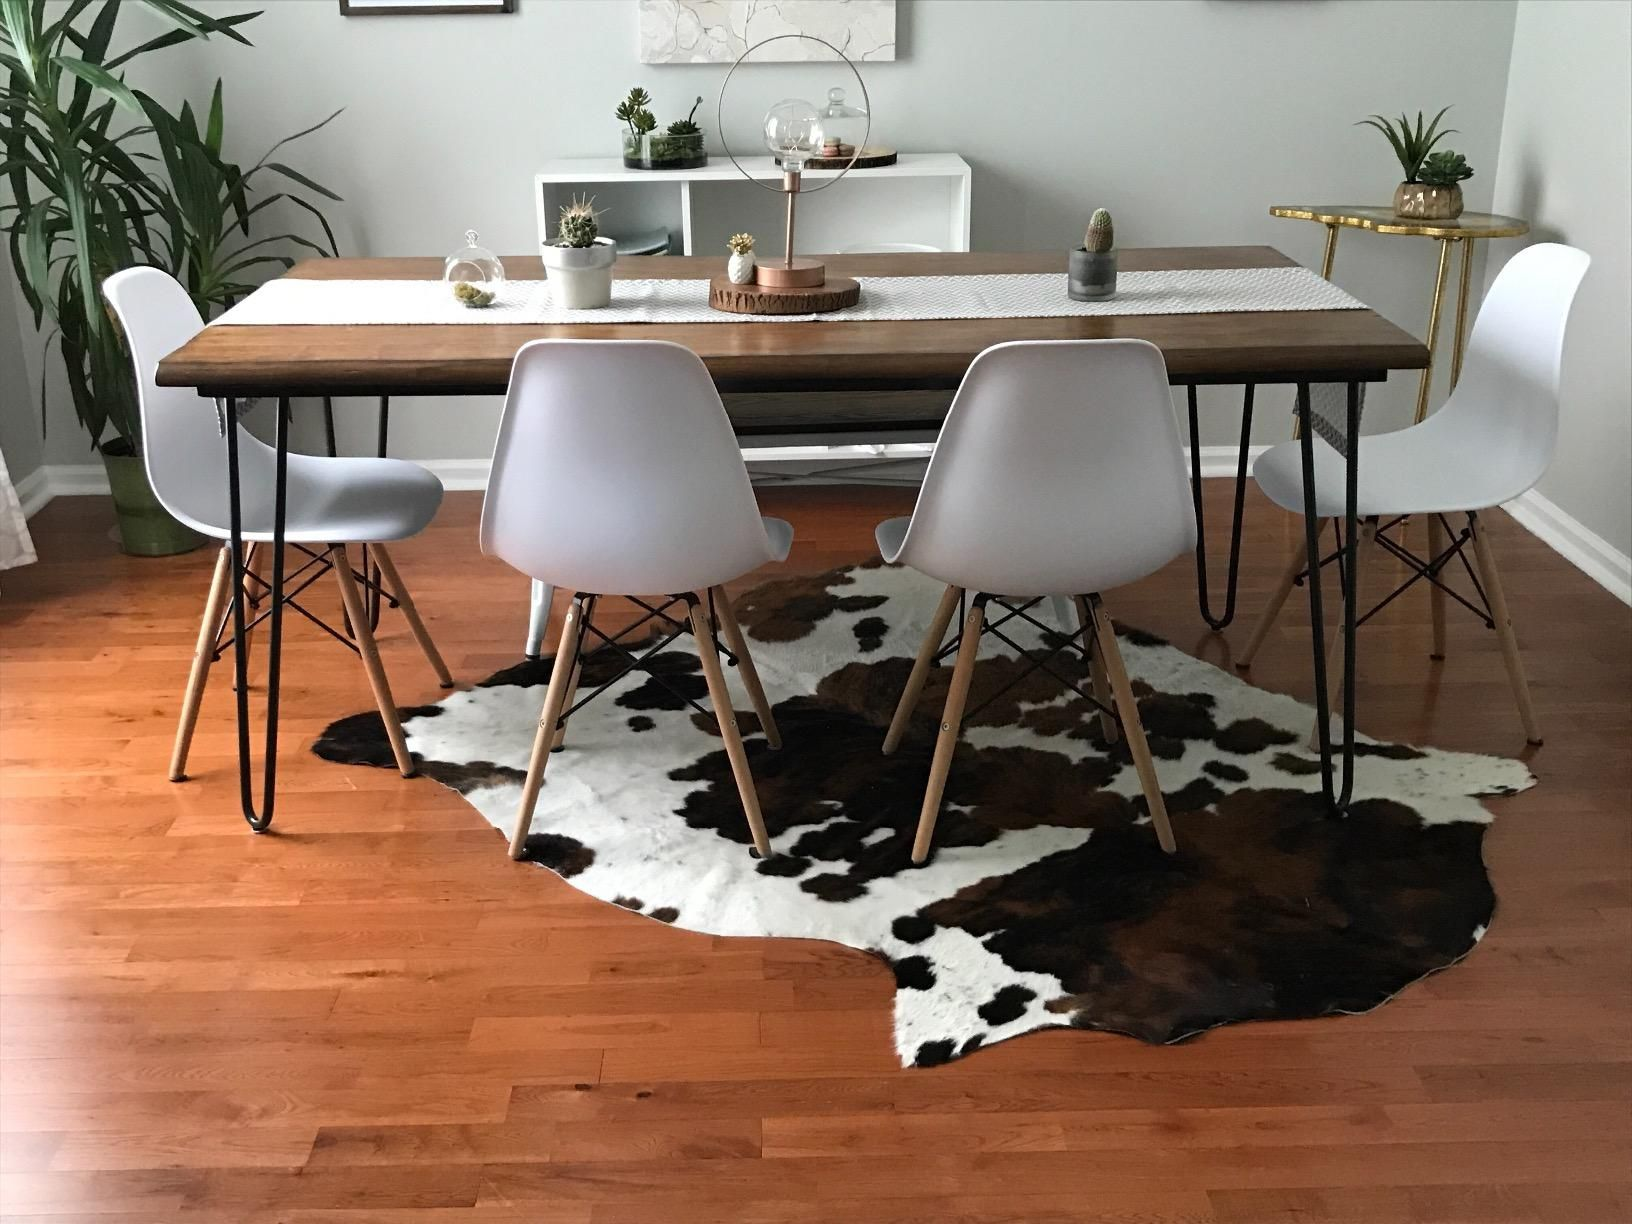 Amazon Com South American Hides Cowhide Rug Brindle With Belly Jumbo White Kitchen Dining Cow Hide Rug Cowhide Rug Size